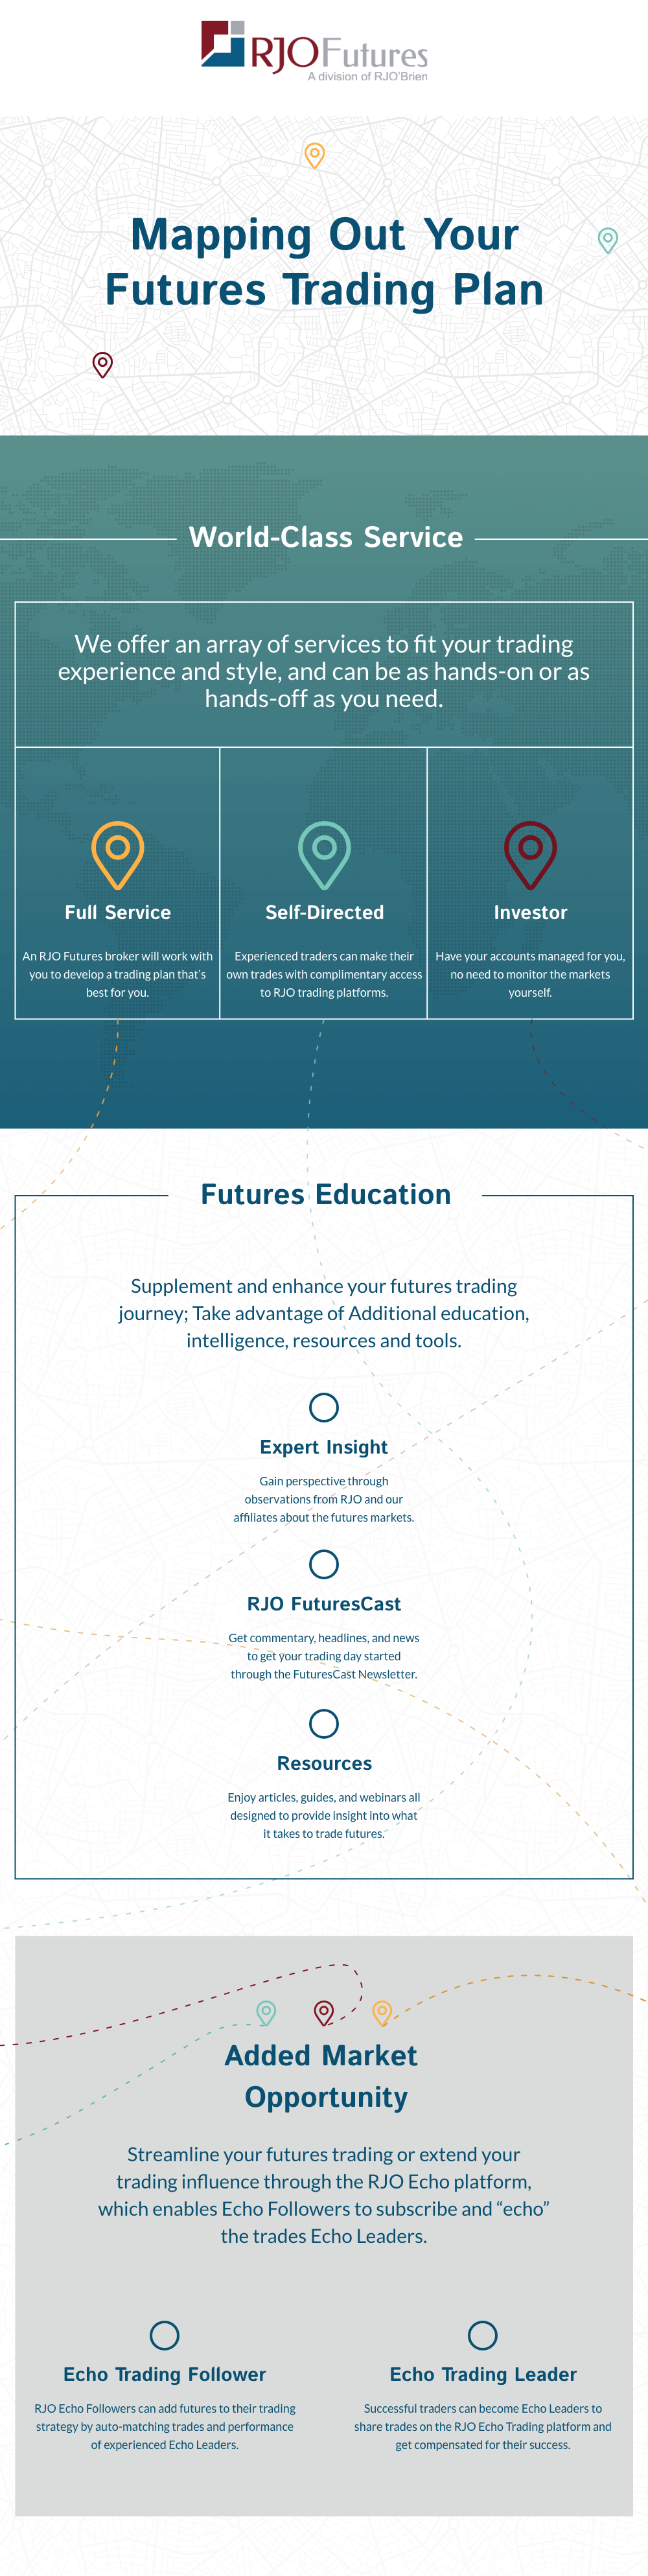 RJO Futures Brokerage Services